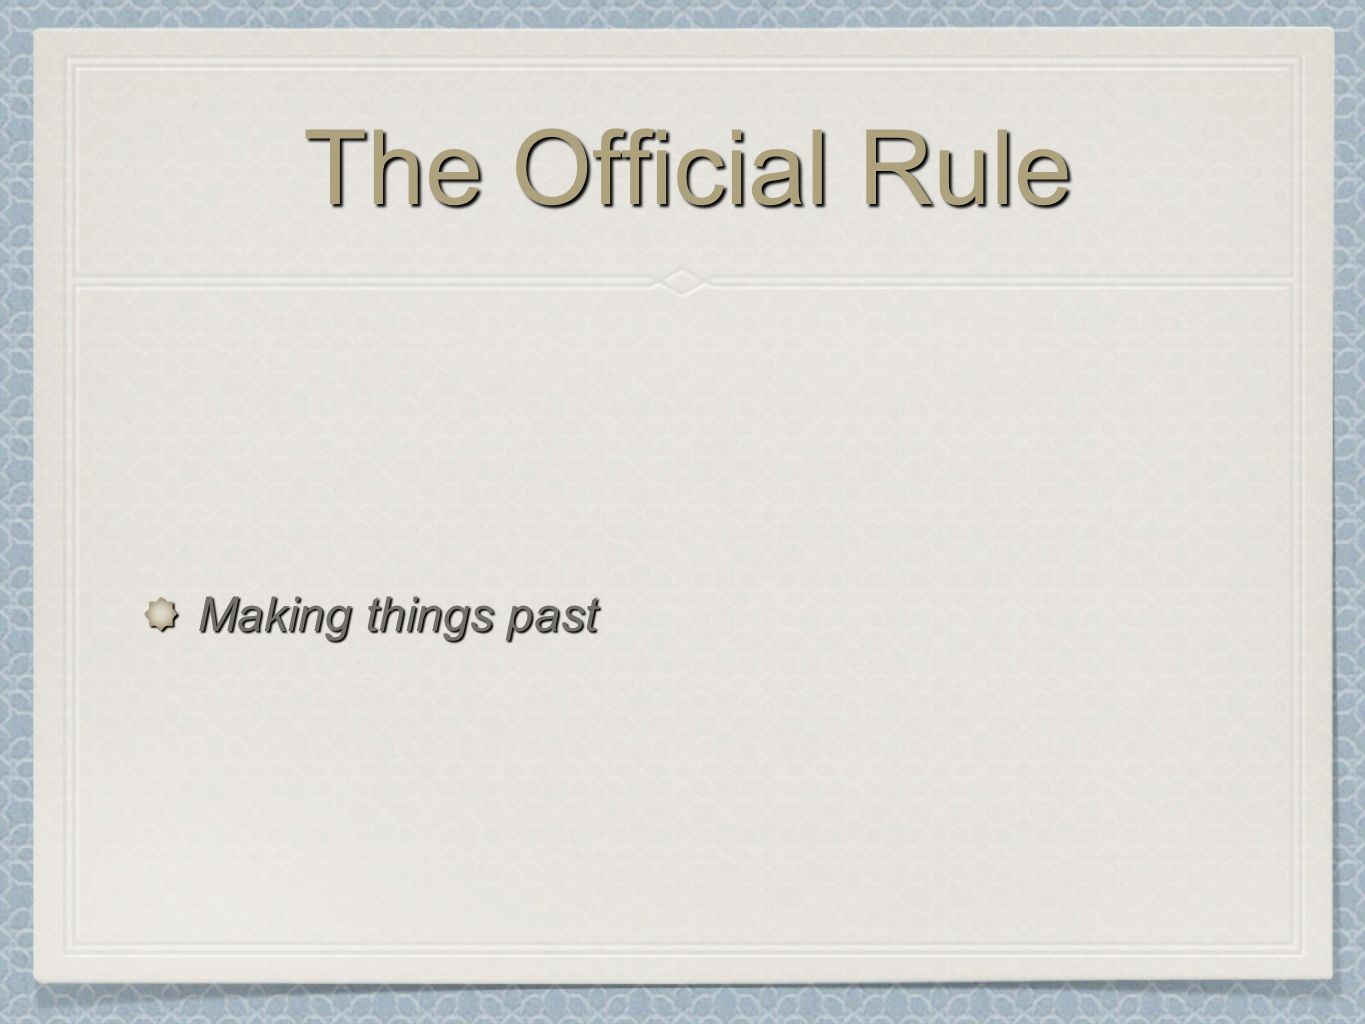 The Official Rule Making things past